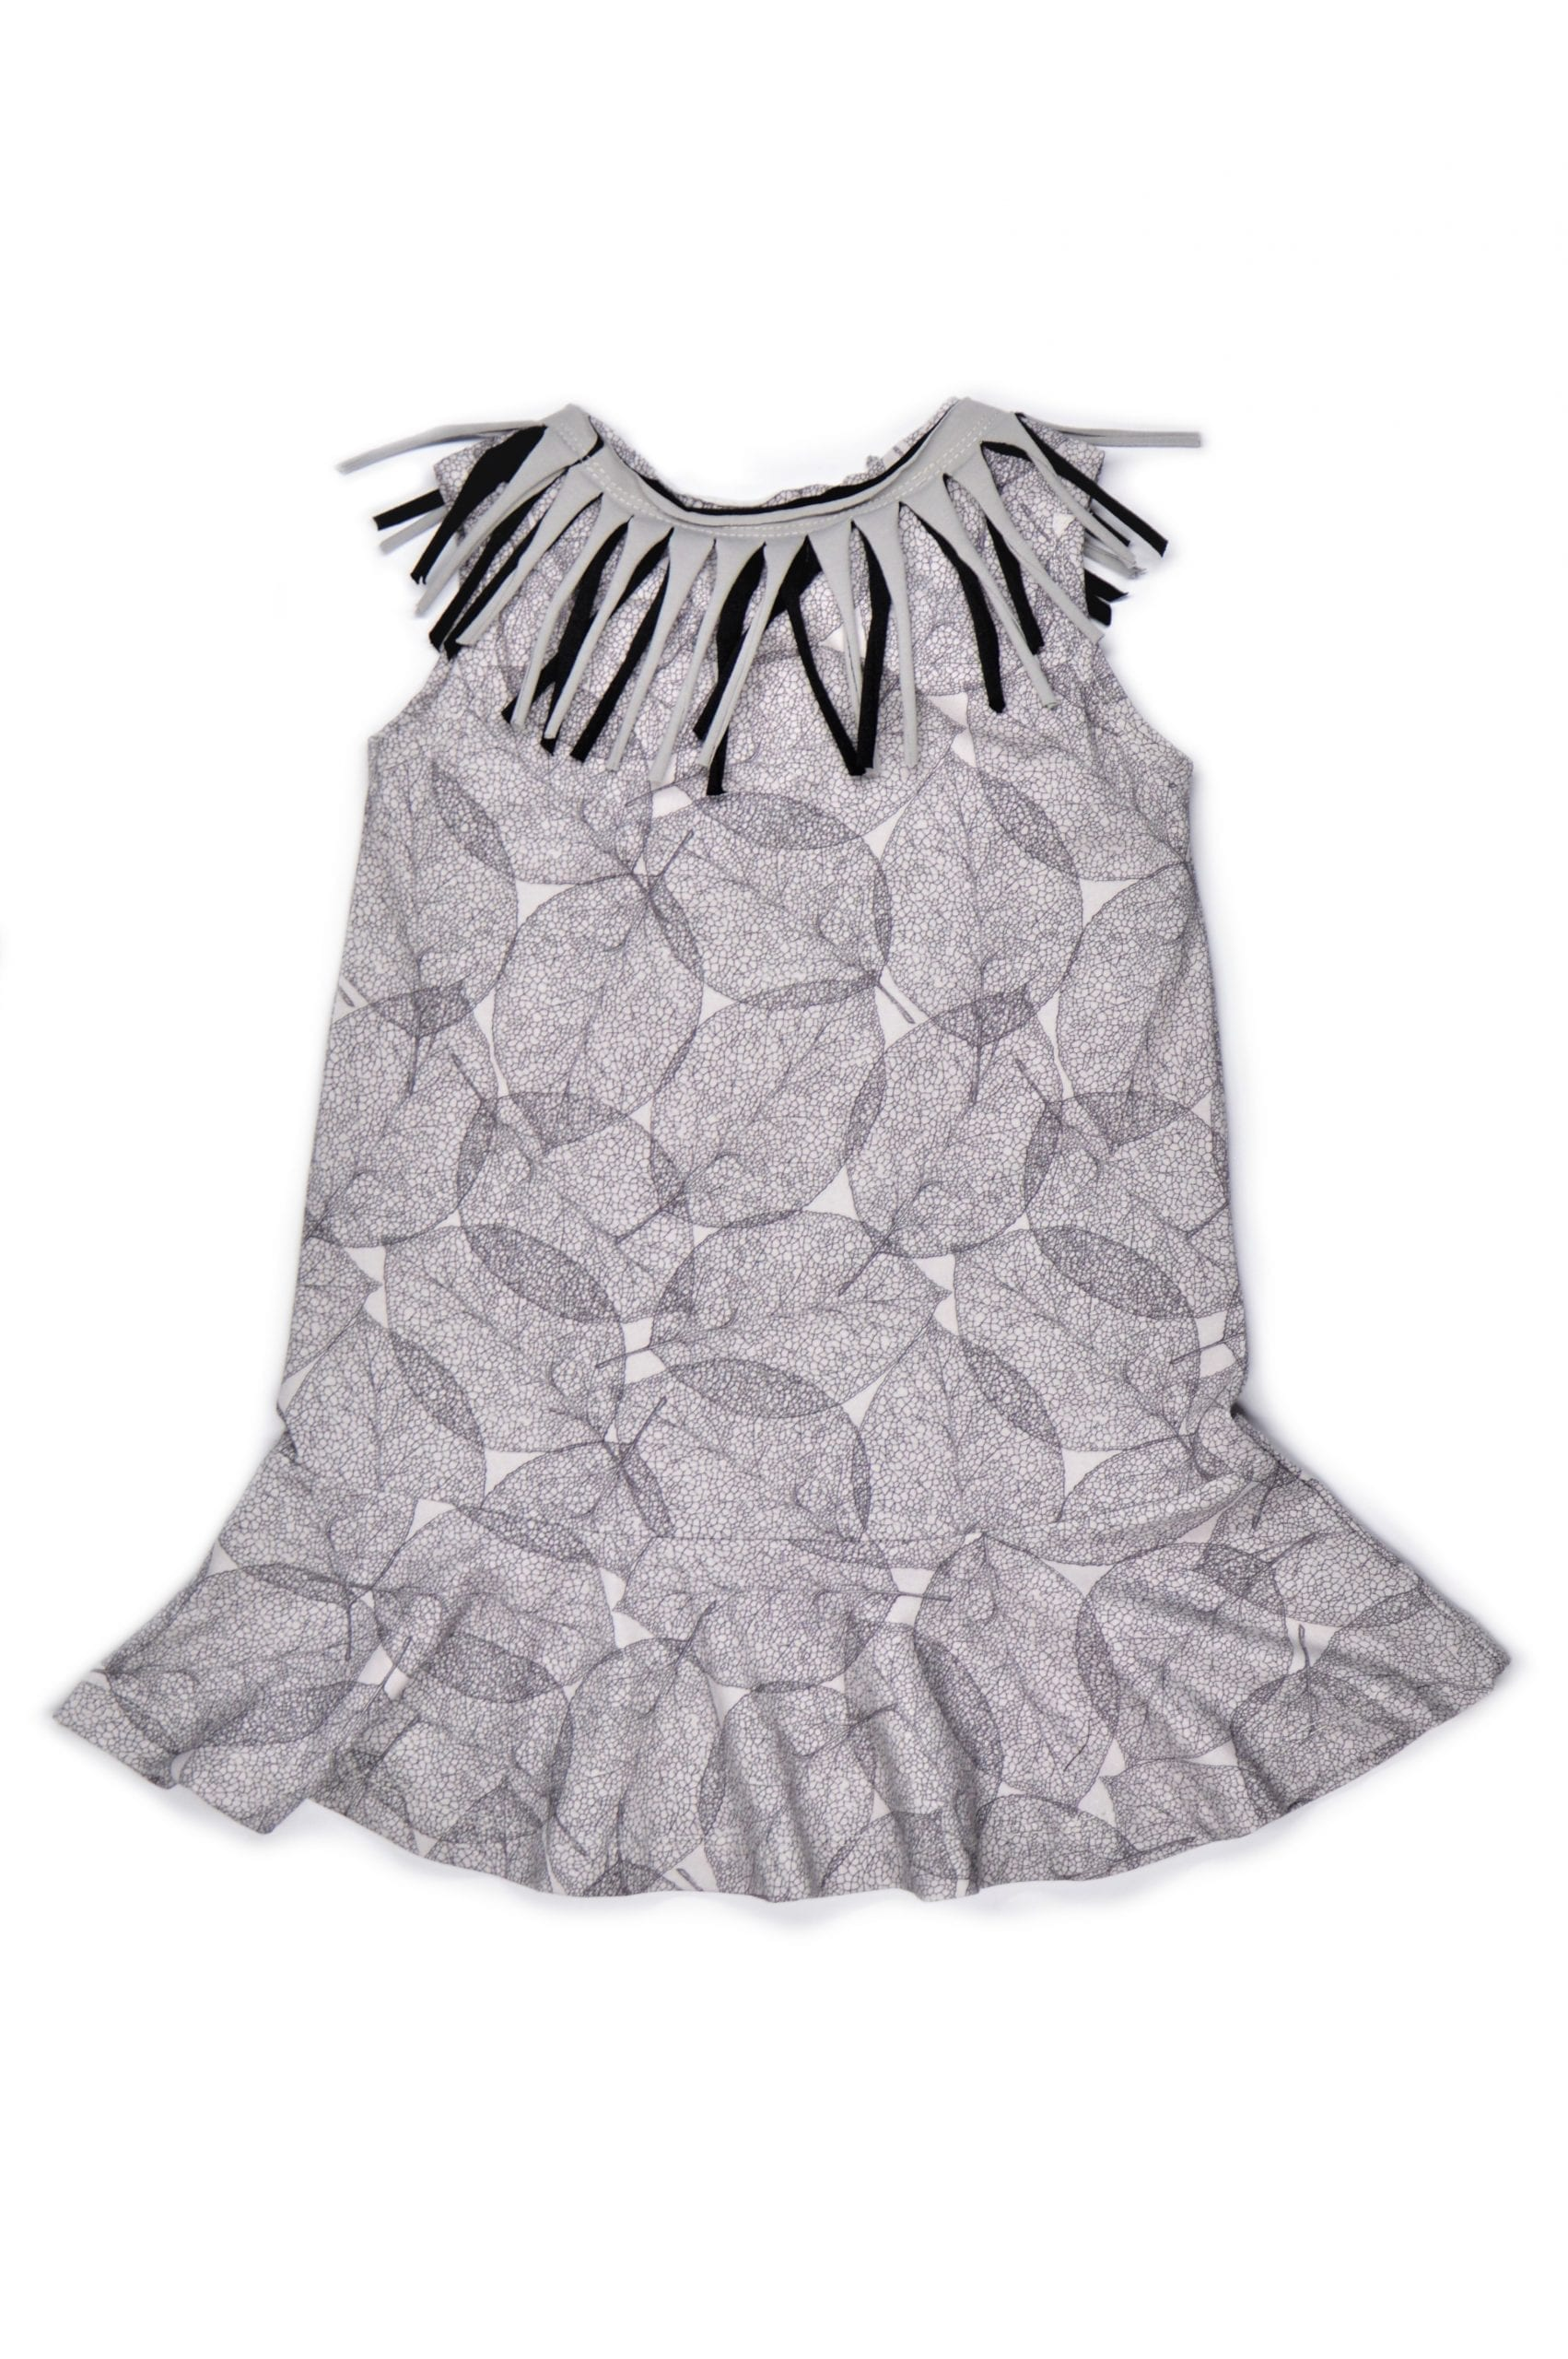 Leaf dress with fringe for toddler, girl, kid, baby